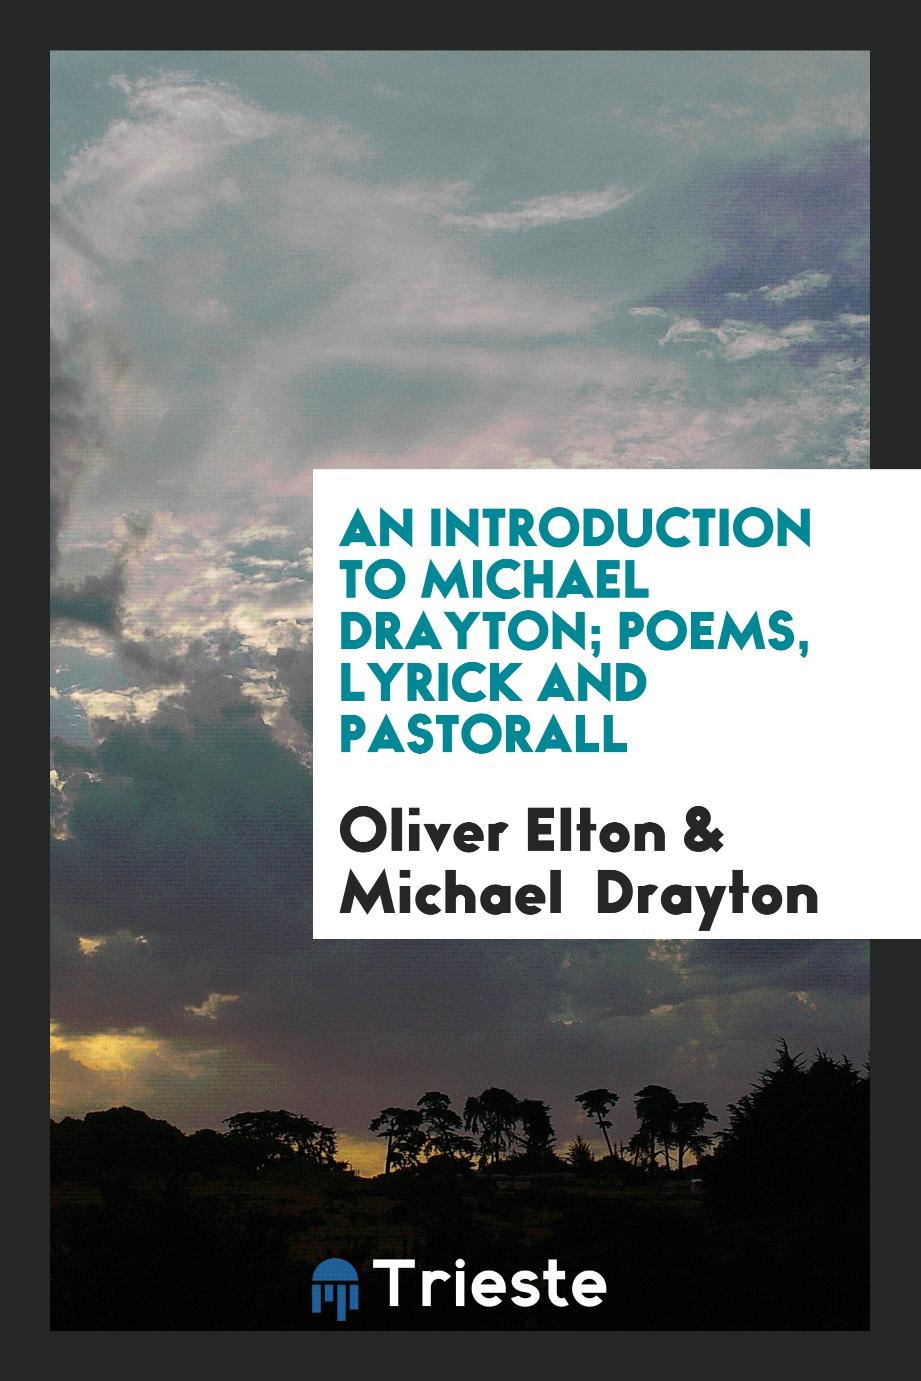 An Introduction to Michael Drayton; Poems, Lyrick and Pastorall